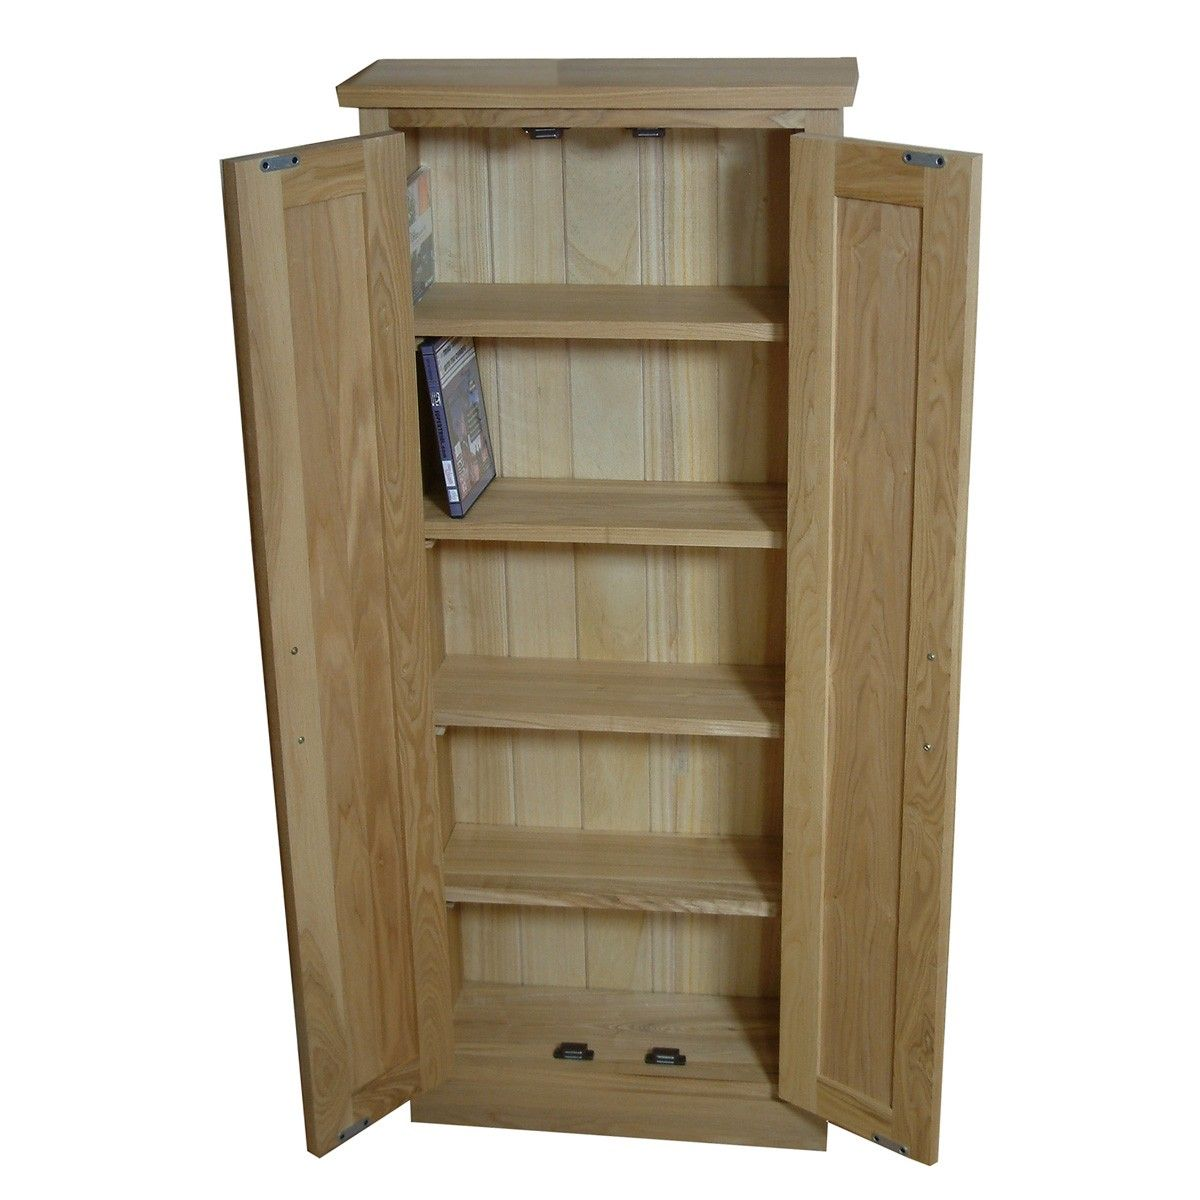 Cherry Wood Dvd Storage Cabinet This Mobel Oak Dvd Storage Cupboard Is A Smart Way To Keep Your